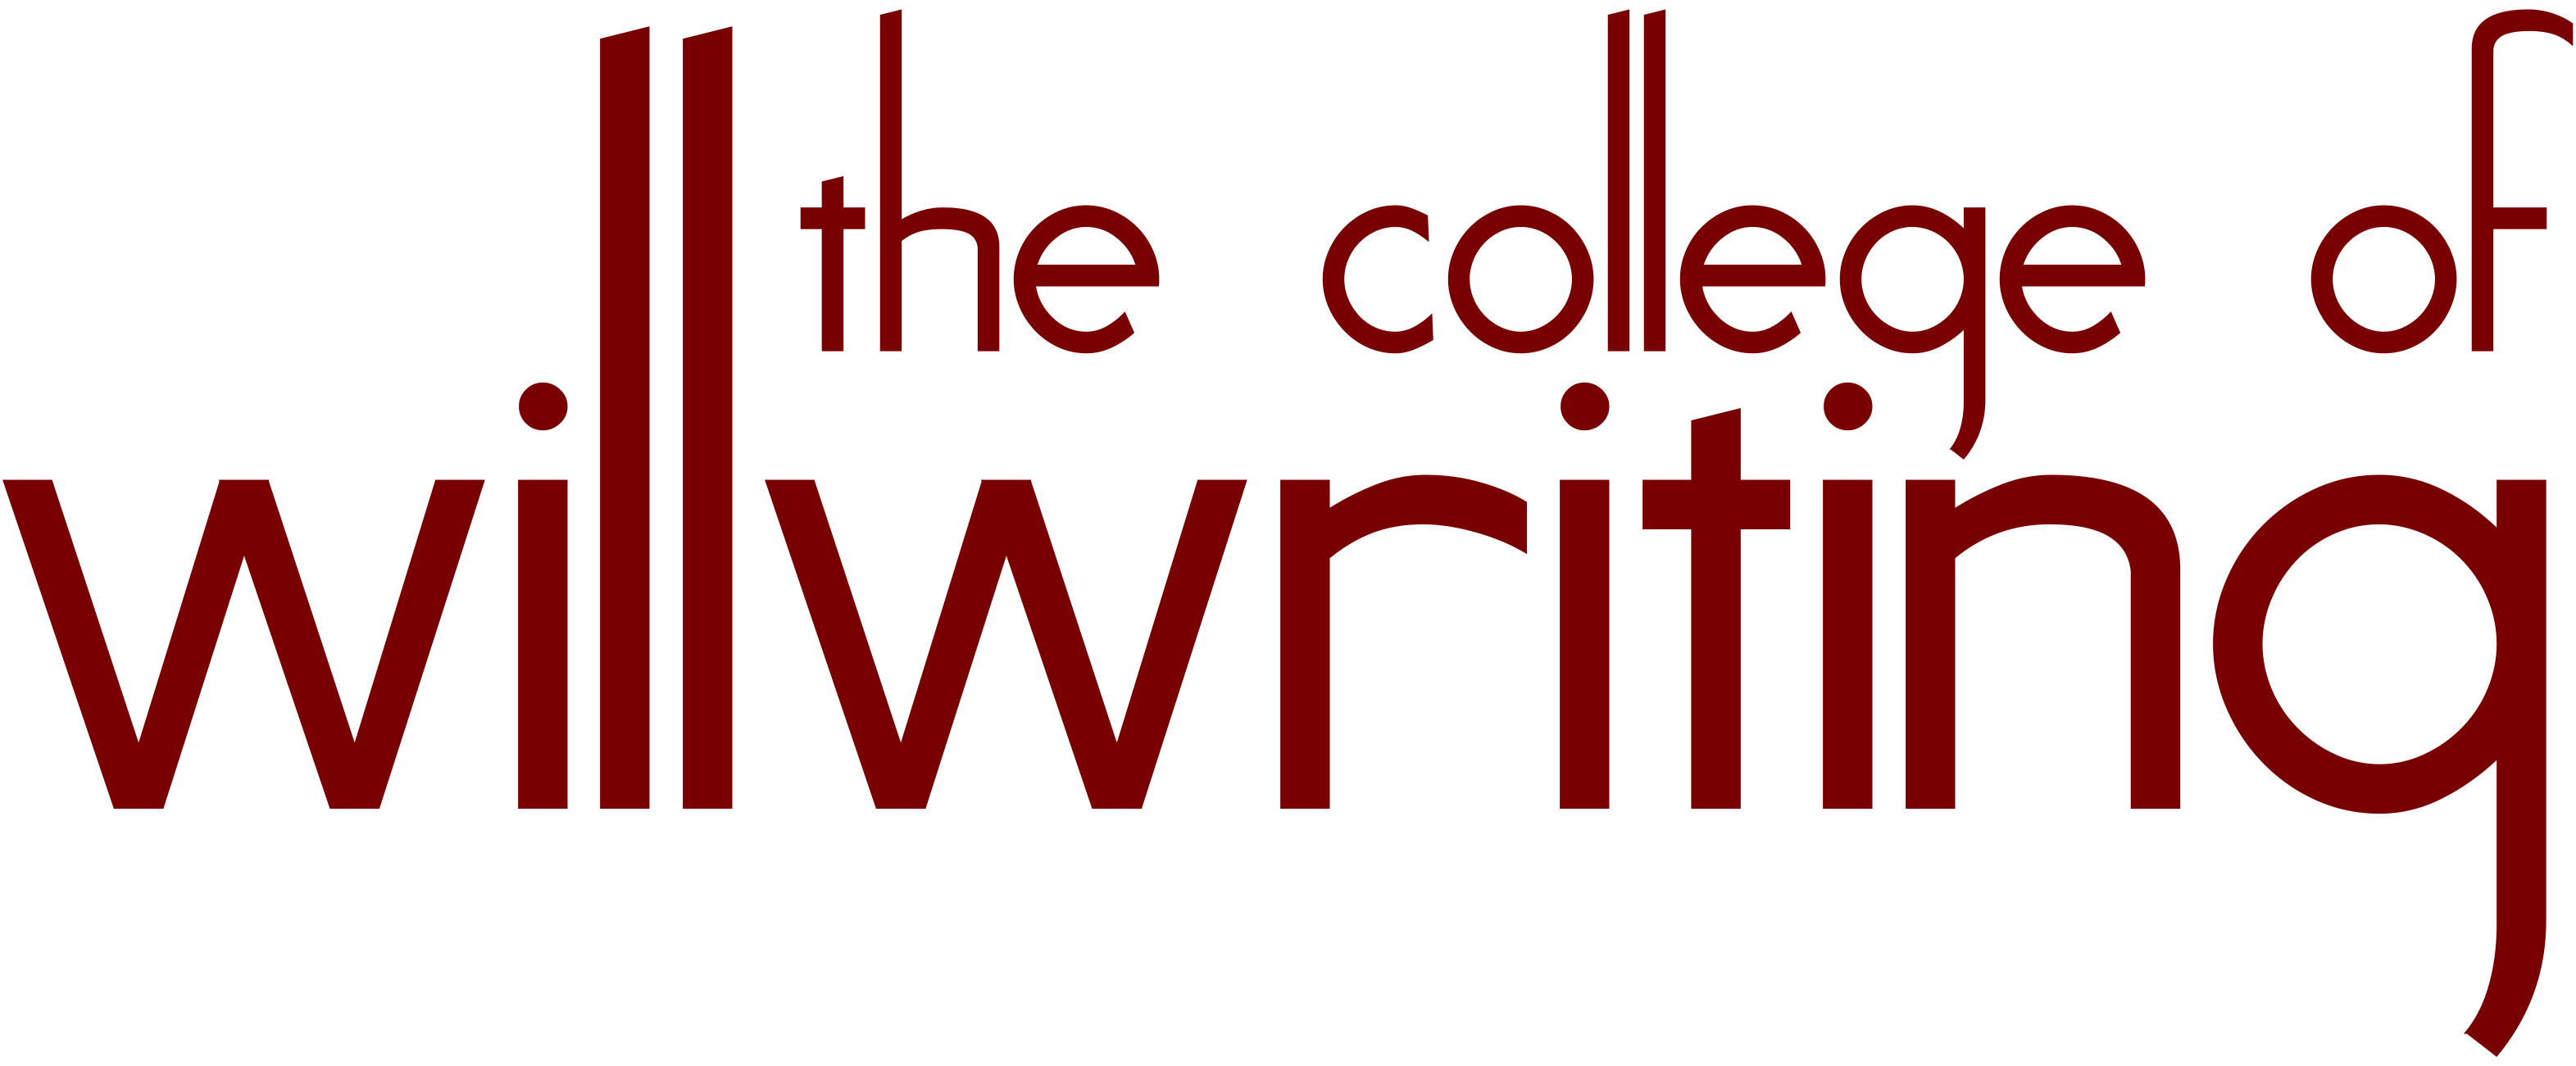 https://i0.wp.com/www.willwriters.com/wp-content/uploads/2019/06/CWW-Logo.png?fit=3143%2C1301&ssl=1